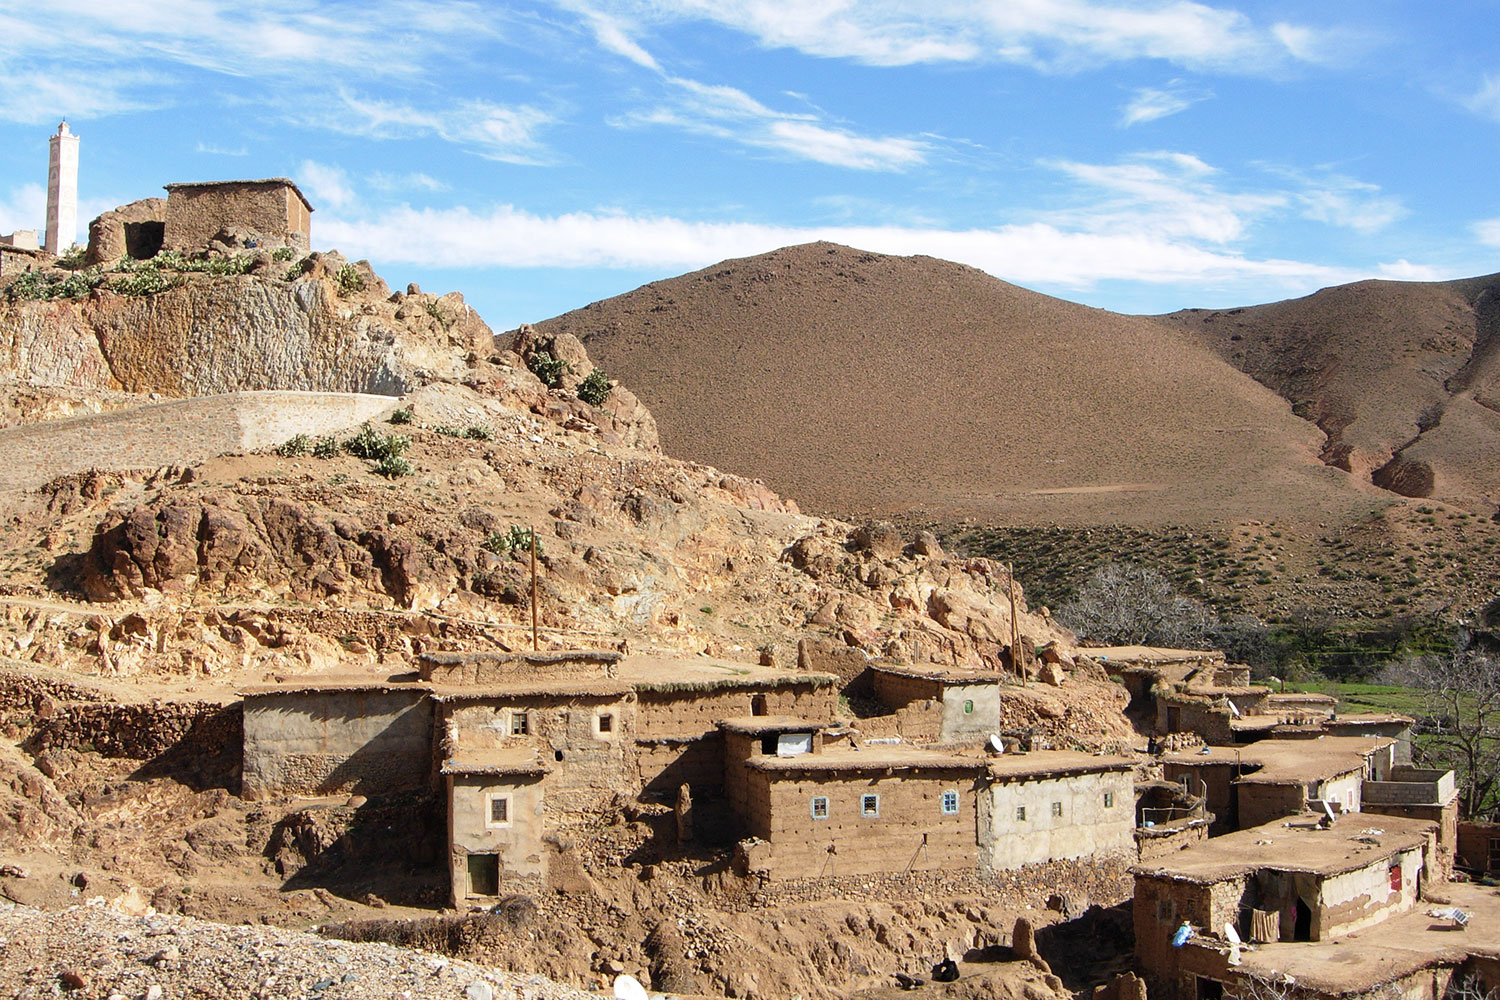 High Atlas Mud Village, Morocco